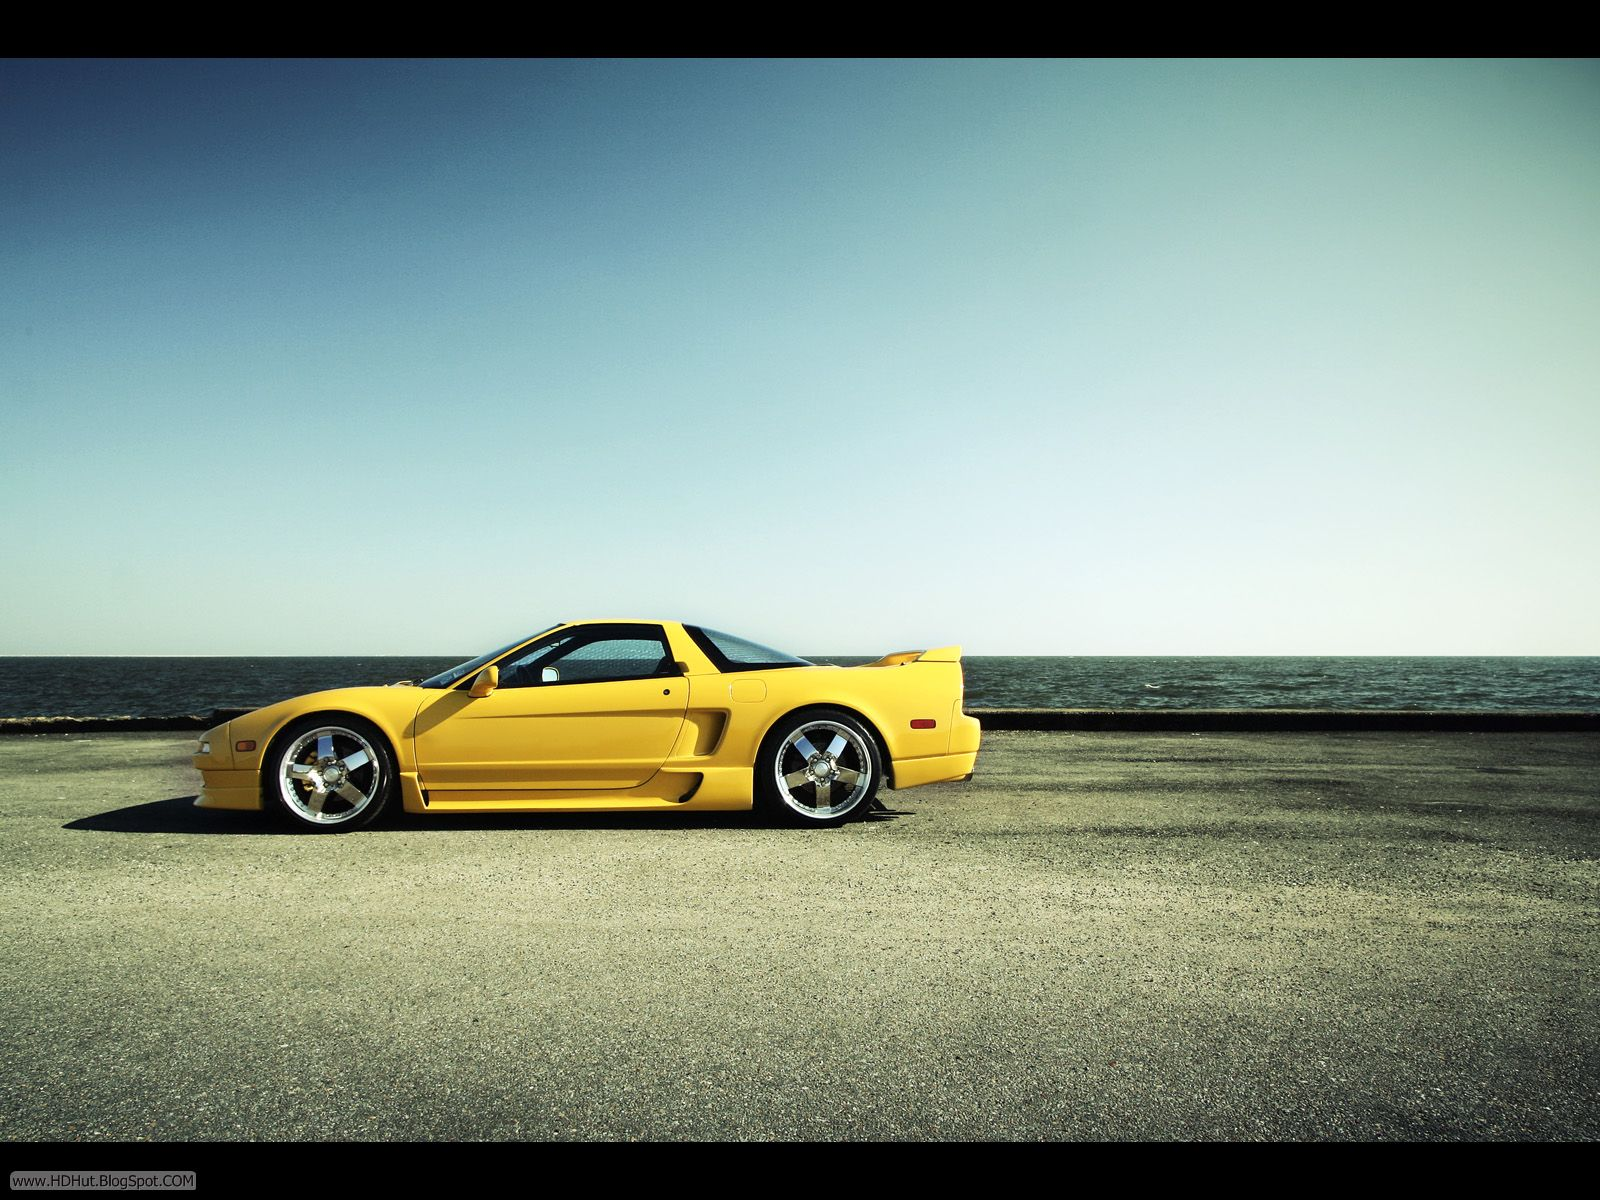 HD Acura Car s In HD Acura Car Wallpapers For Desktop Acura Car Wallpapers For Laptop Acura Car New Model Wallpapers 2013 New Model OF Acura Car